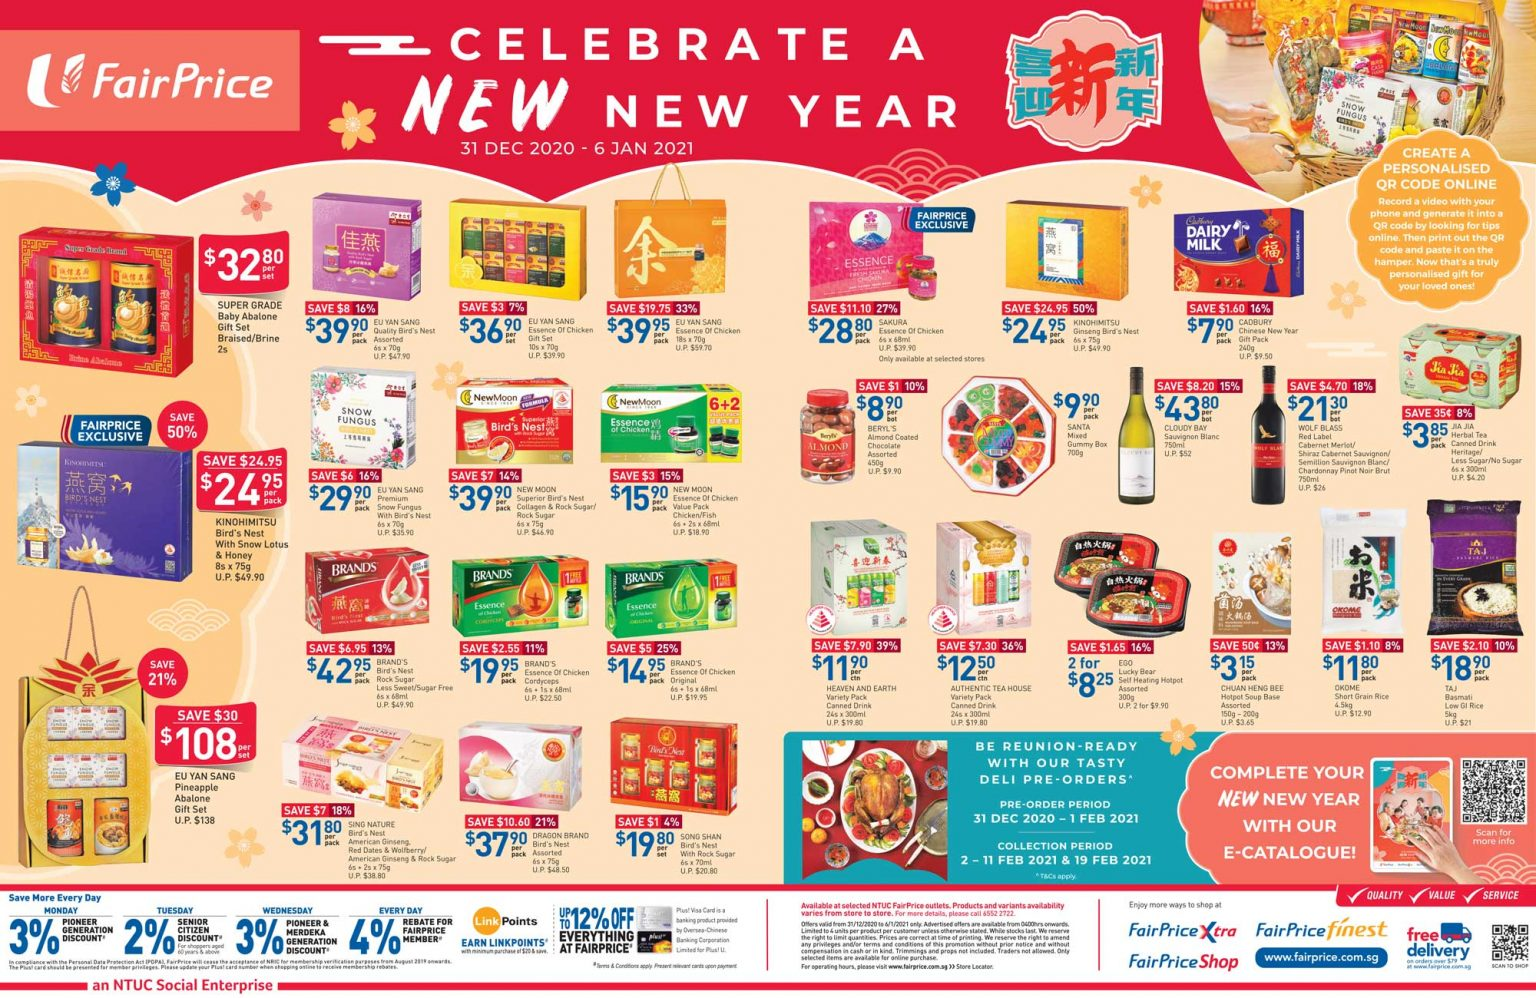 Ring in a new year with FairPrice from now till 6 January 2021